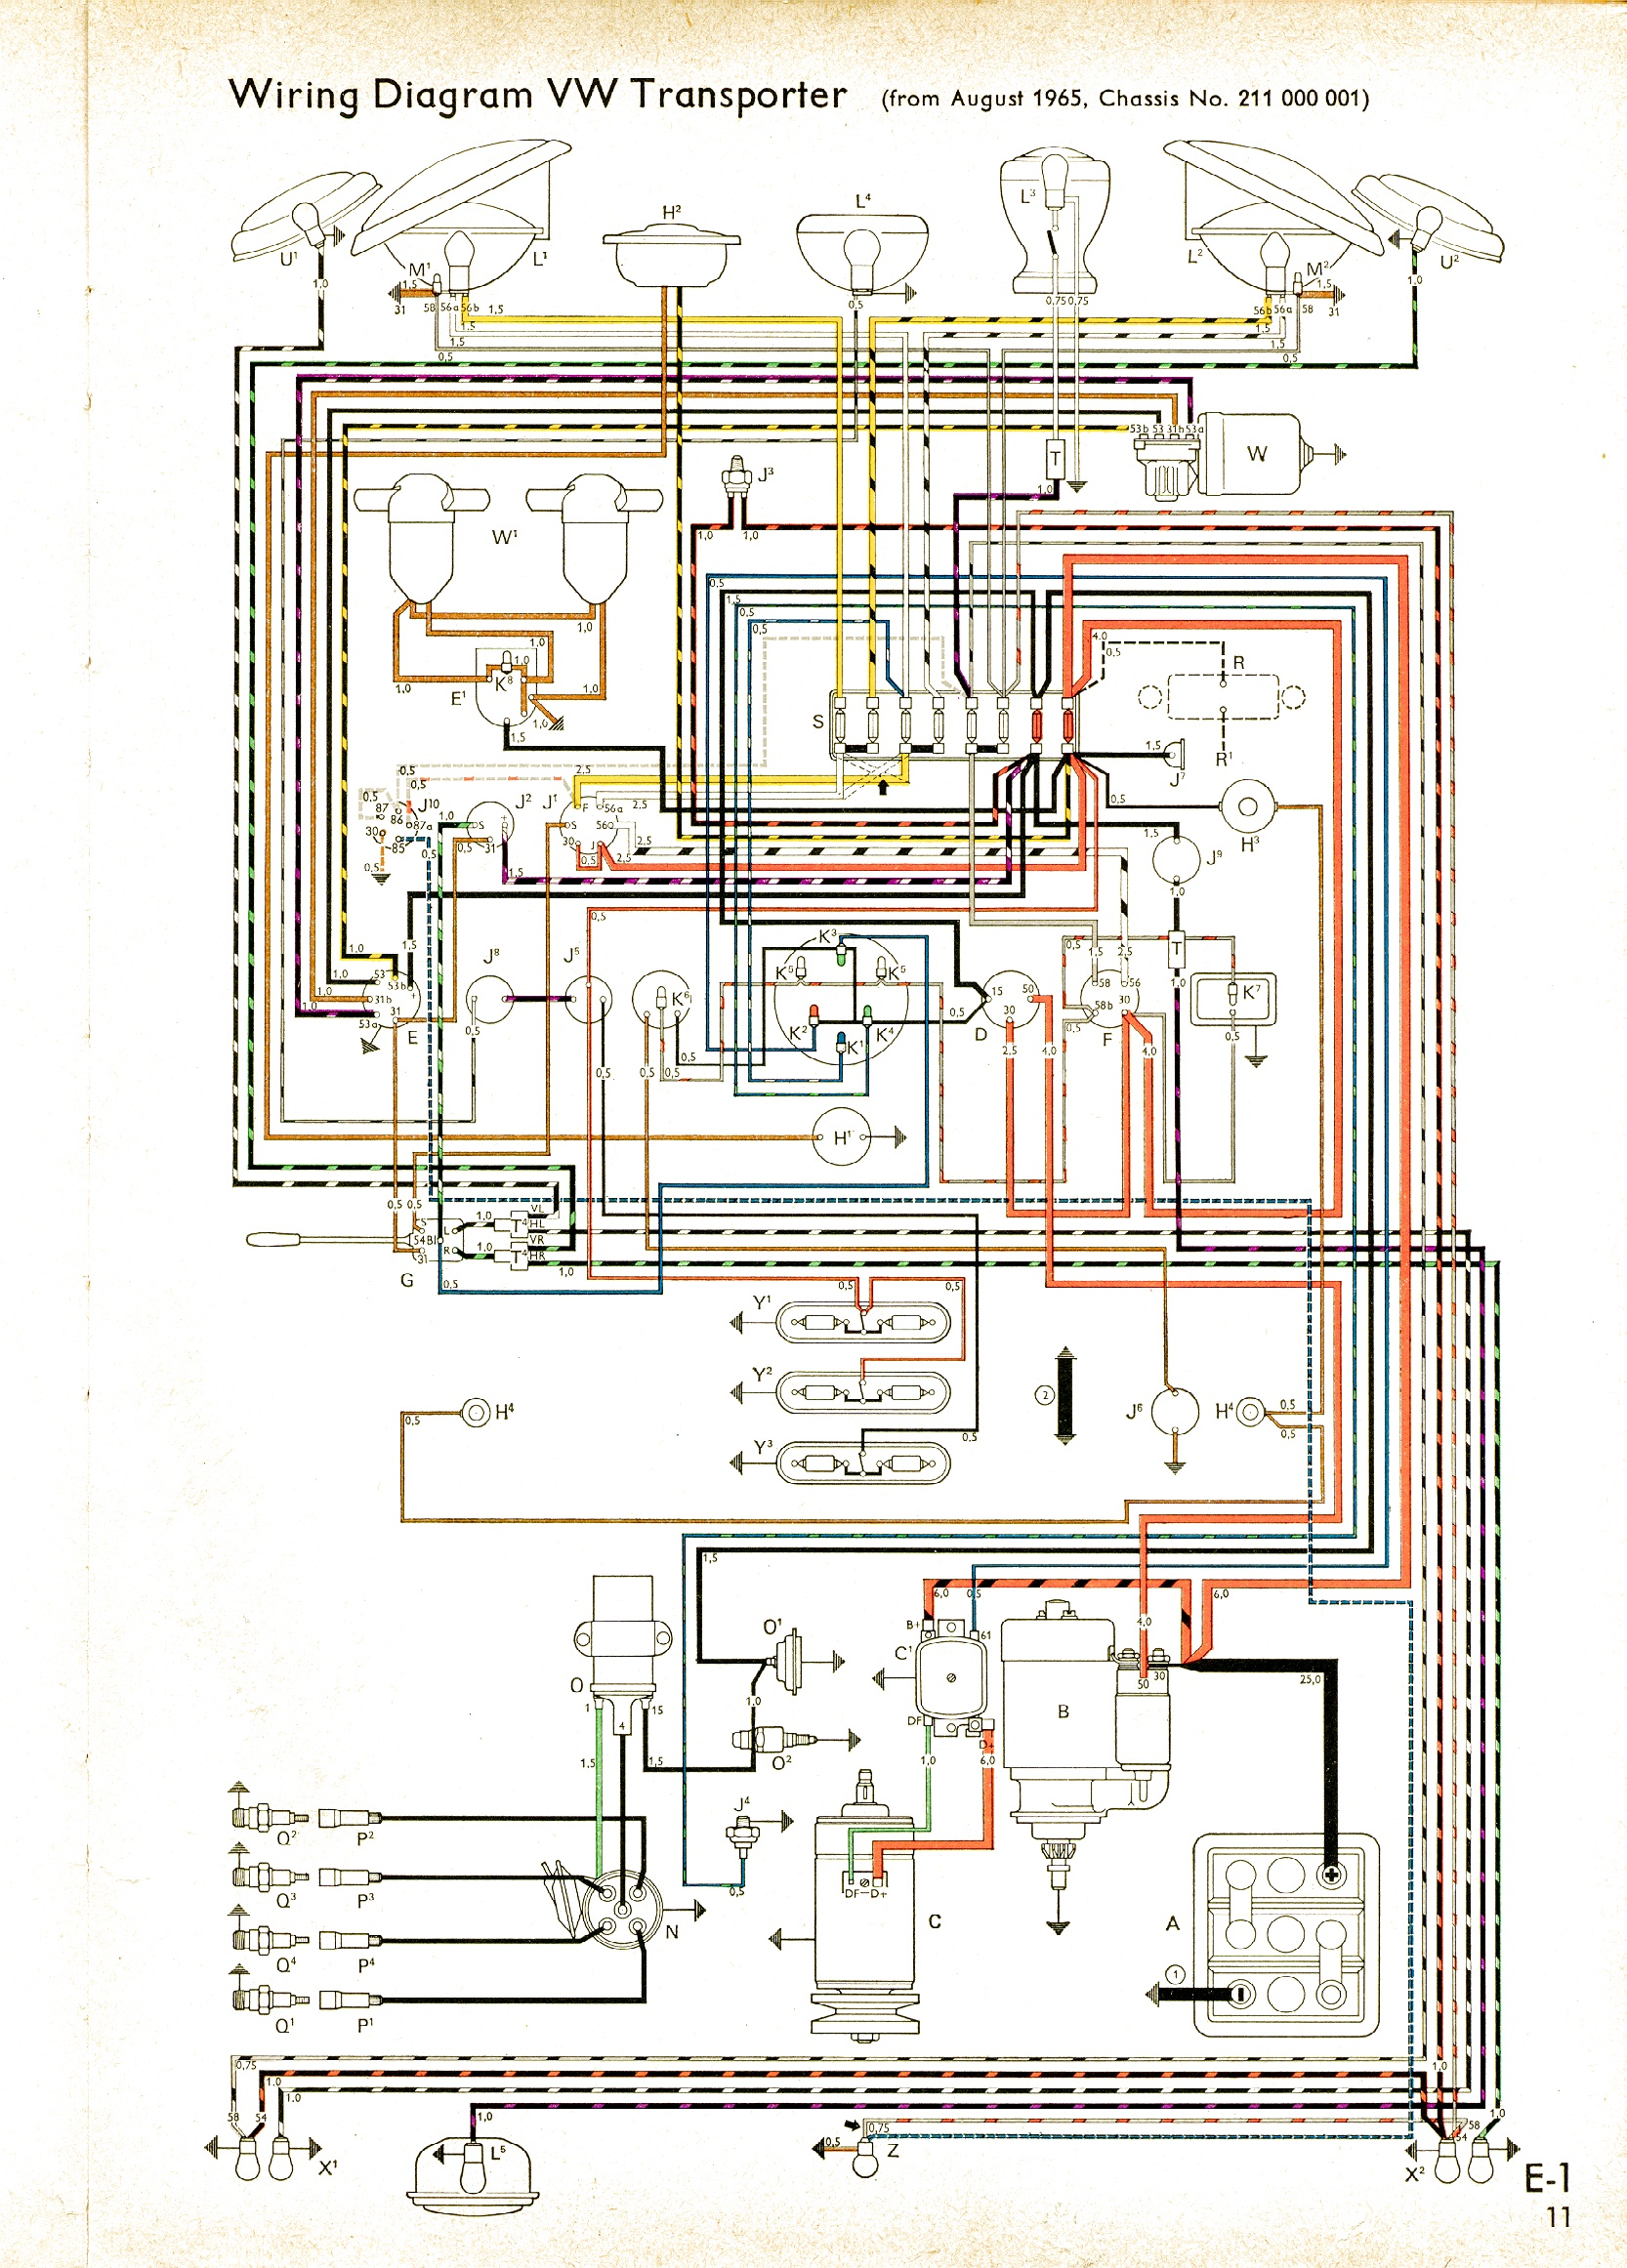 hight resolution of volkswagen thing wiring diagram wiring library rh 8 evitta de 1972 vw wiring diagram 72 vw beetle ignition wiring